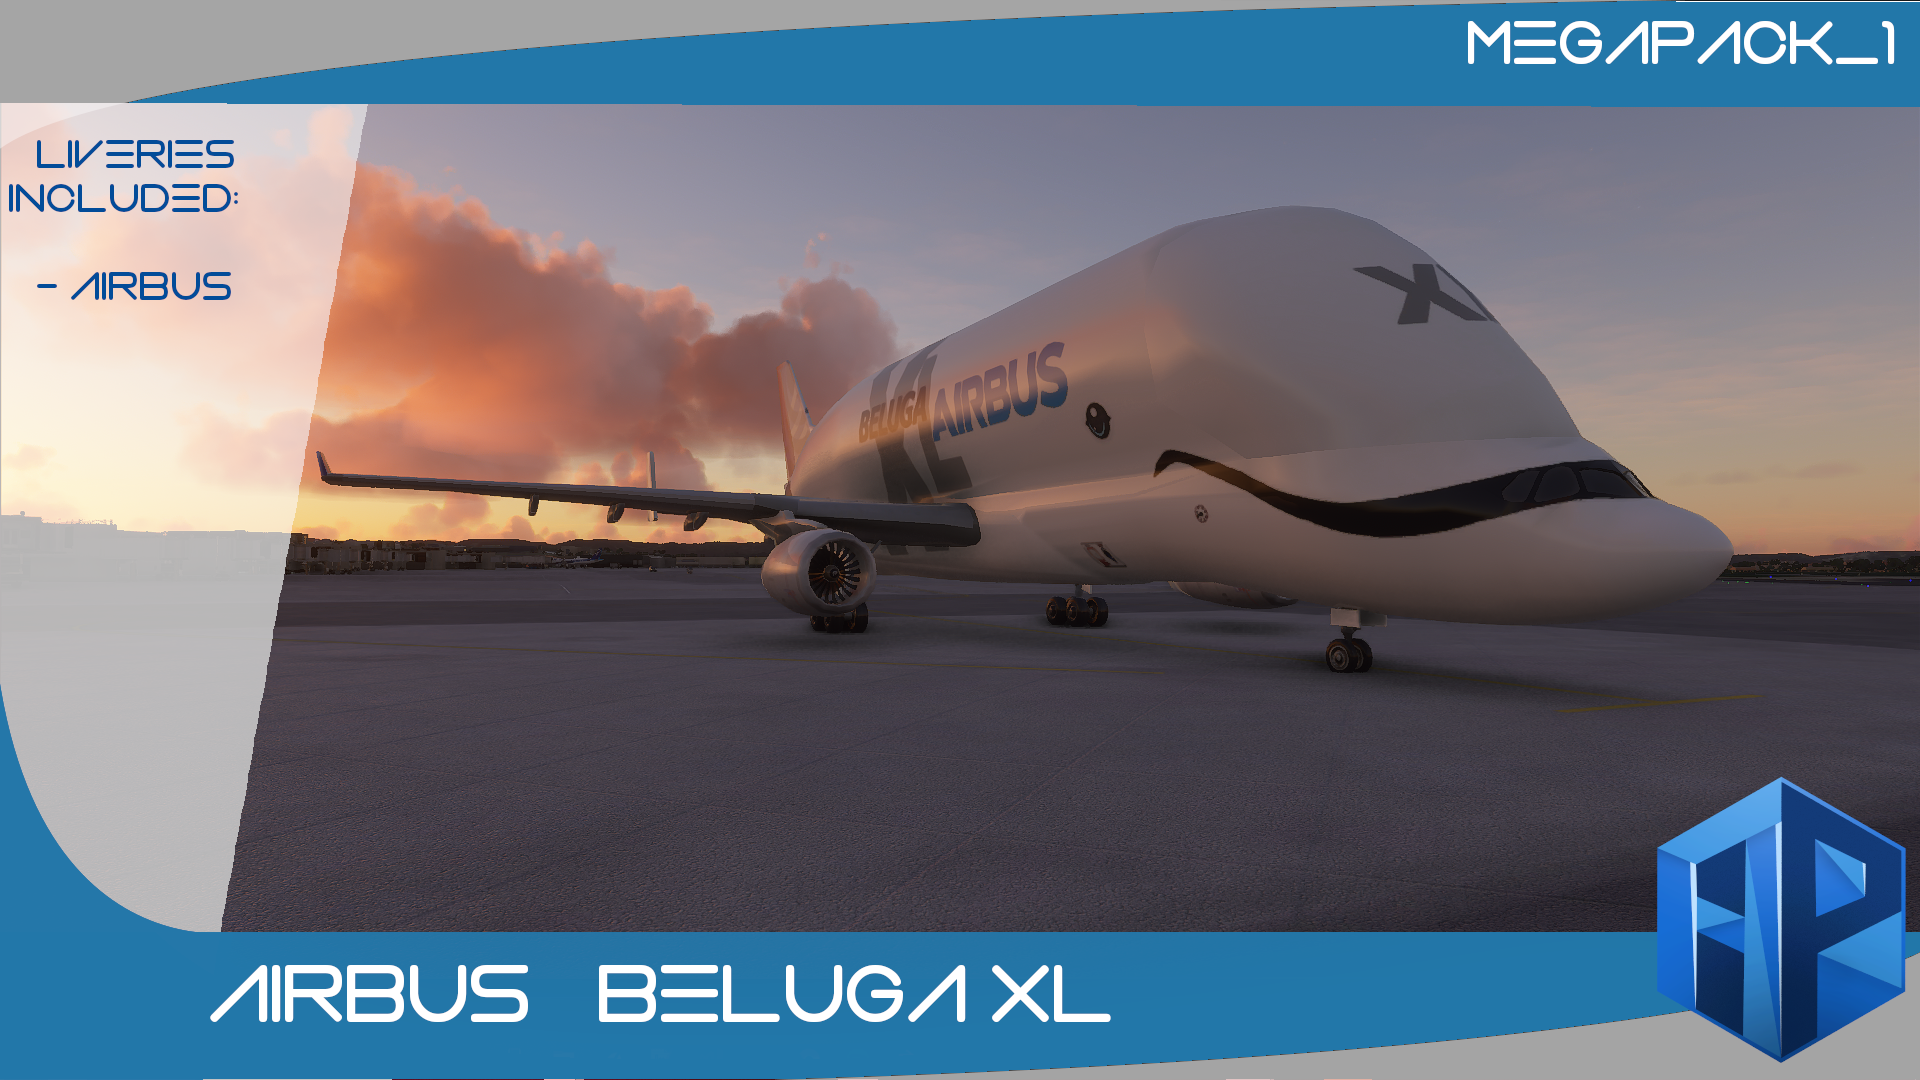 AZURPOLY - DEVELOPERS-STATICS-AIRCRAFTS-MEGAPACK1 MSFS